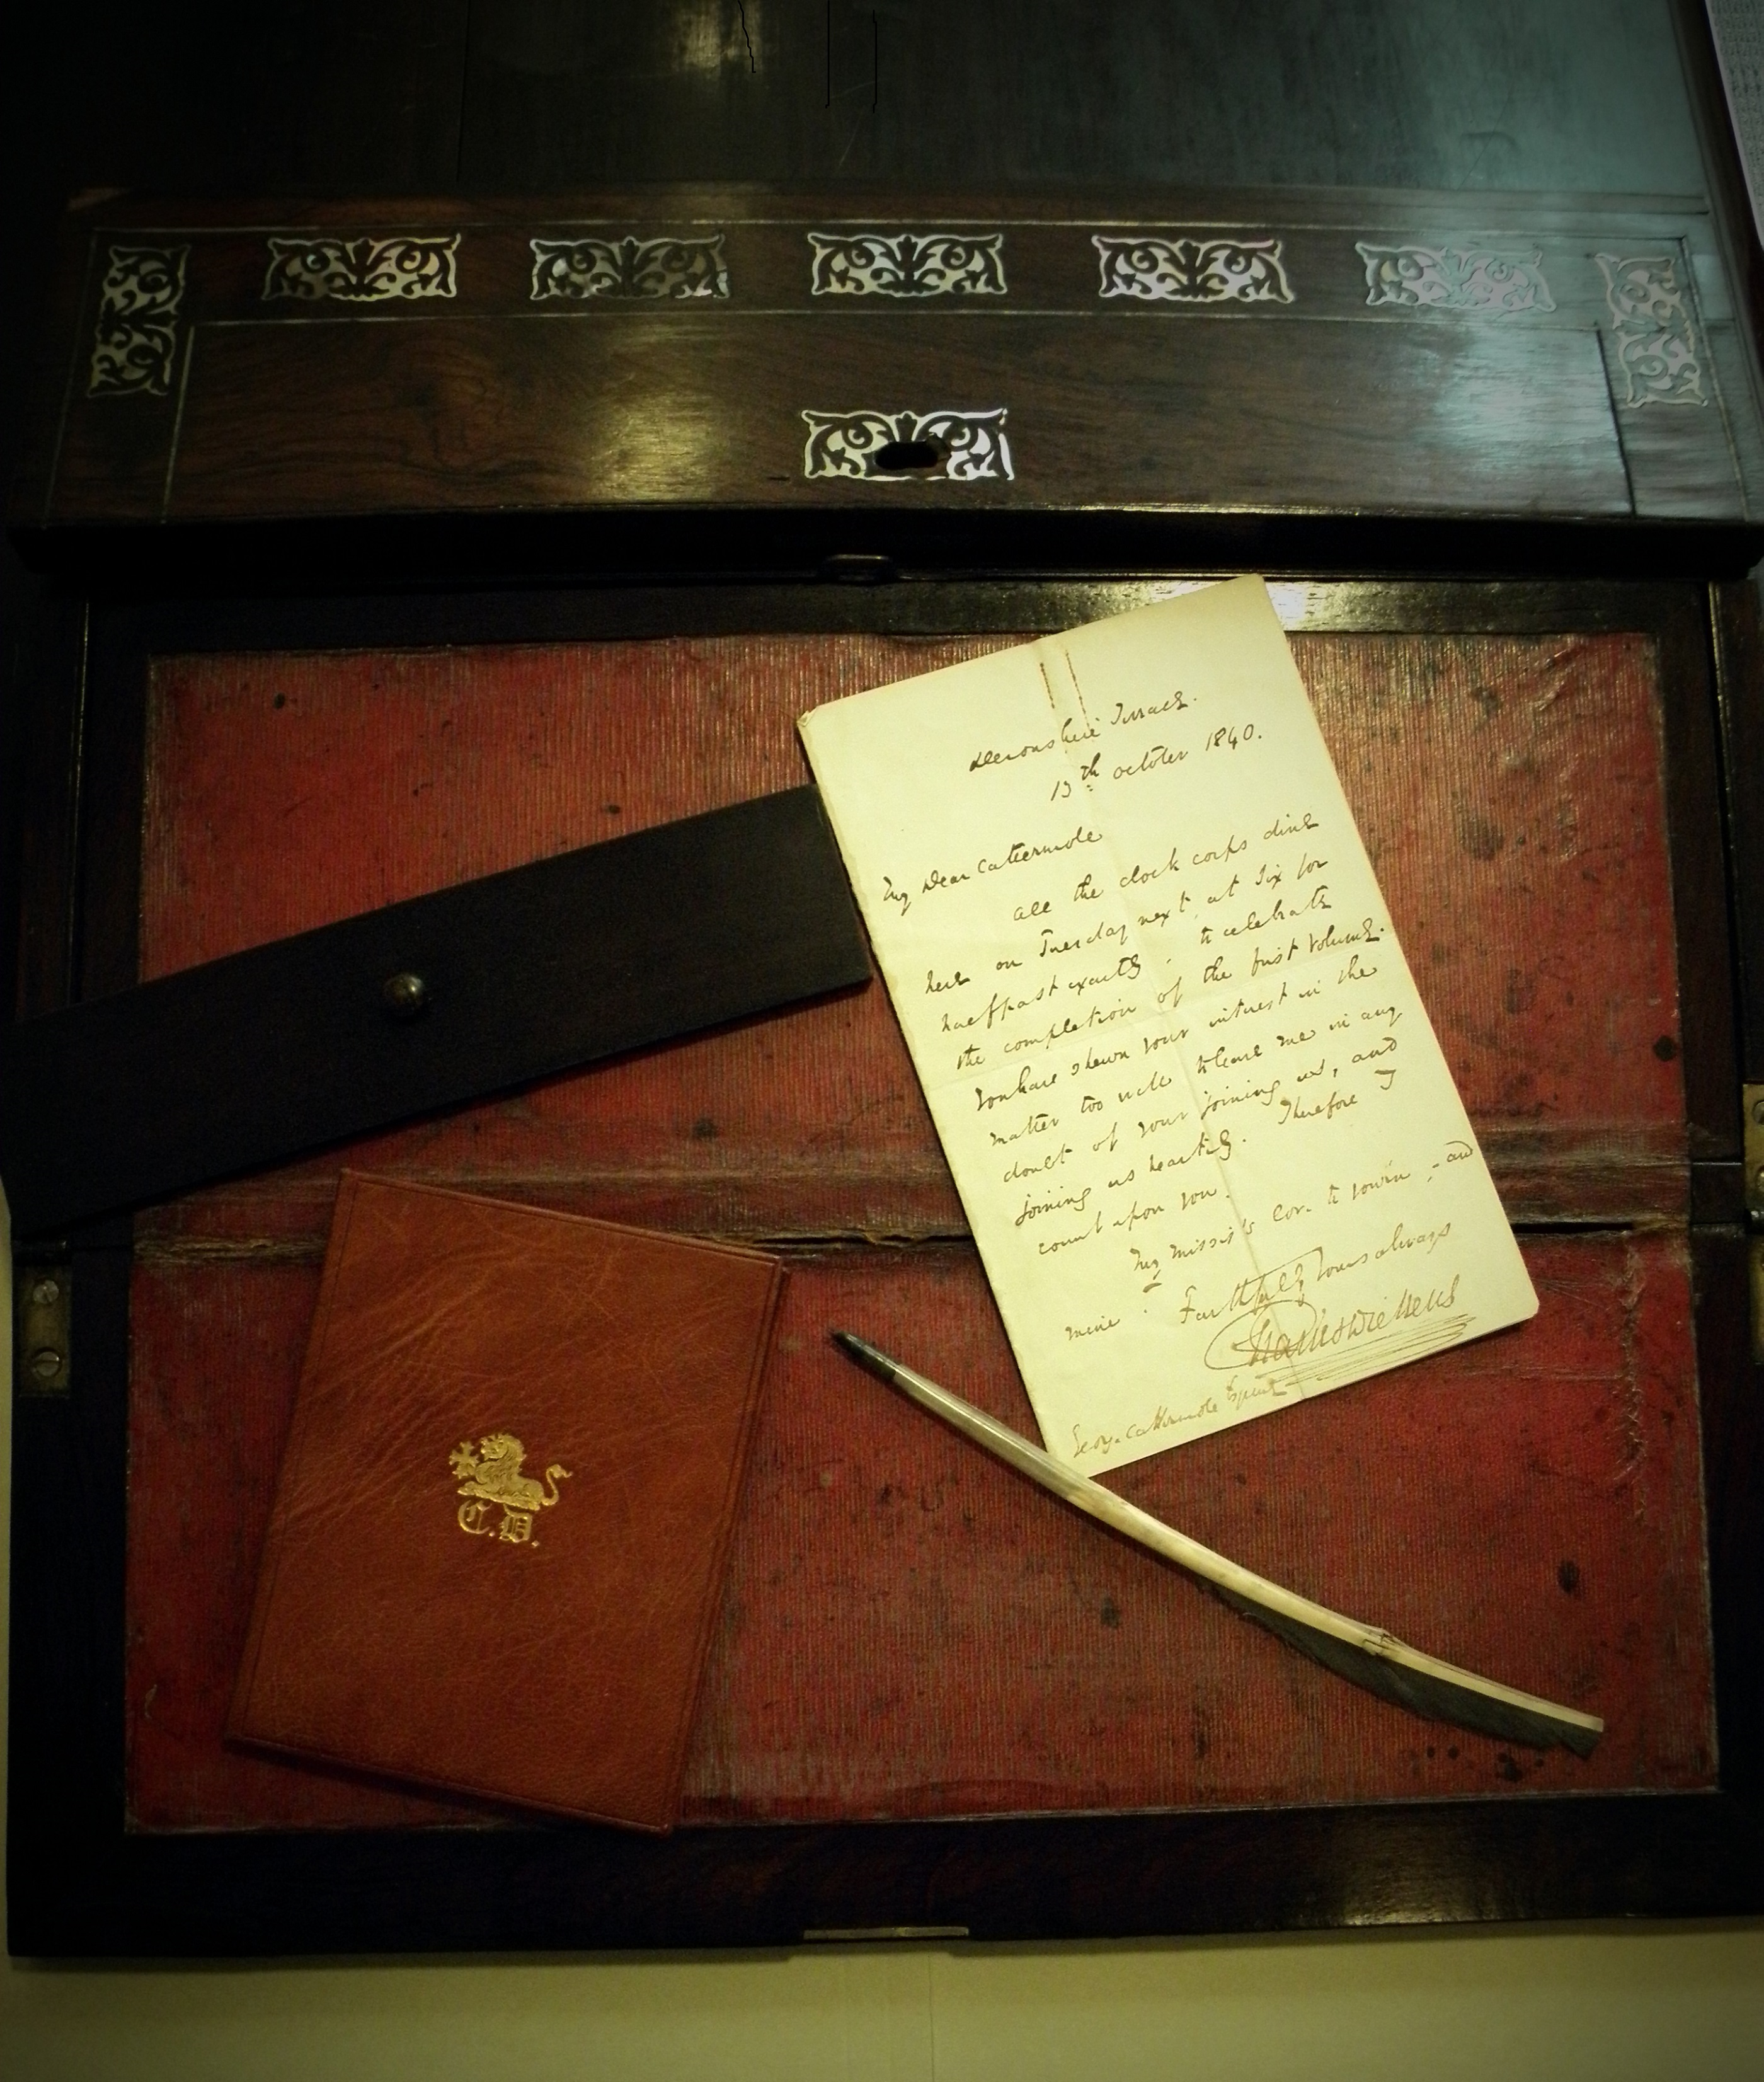 Charles Dickens' portable writing desk